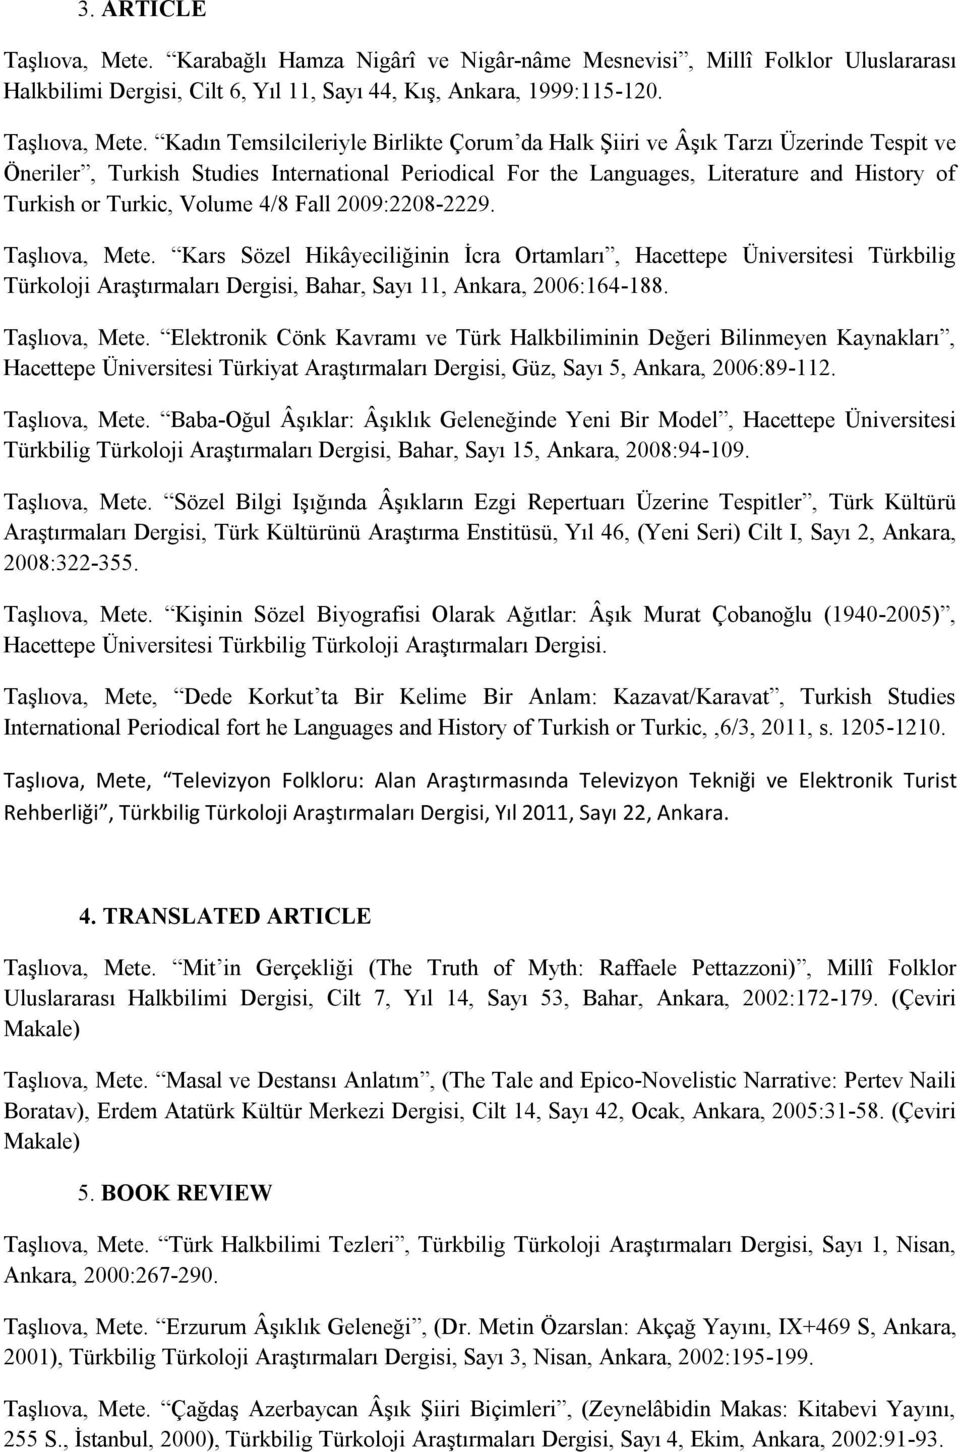 Kadın Temsilcileriyle Birlikte Çorum da Halk Şiiri ve Âşık Tarzı Üzerinde Tespit ve Öneriler, Turkish Studies International Periodical For the Languages, Literature and History of Turkish or Turkic,